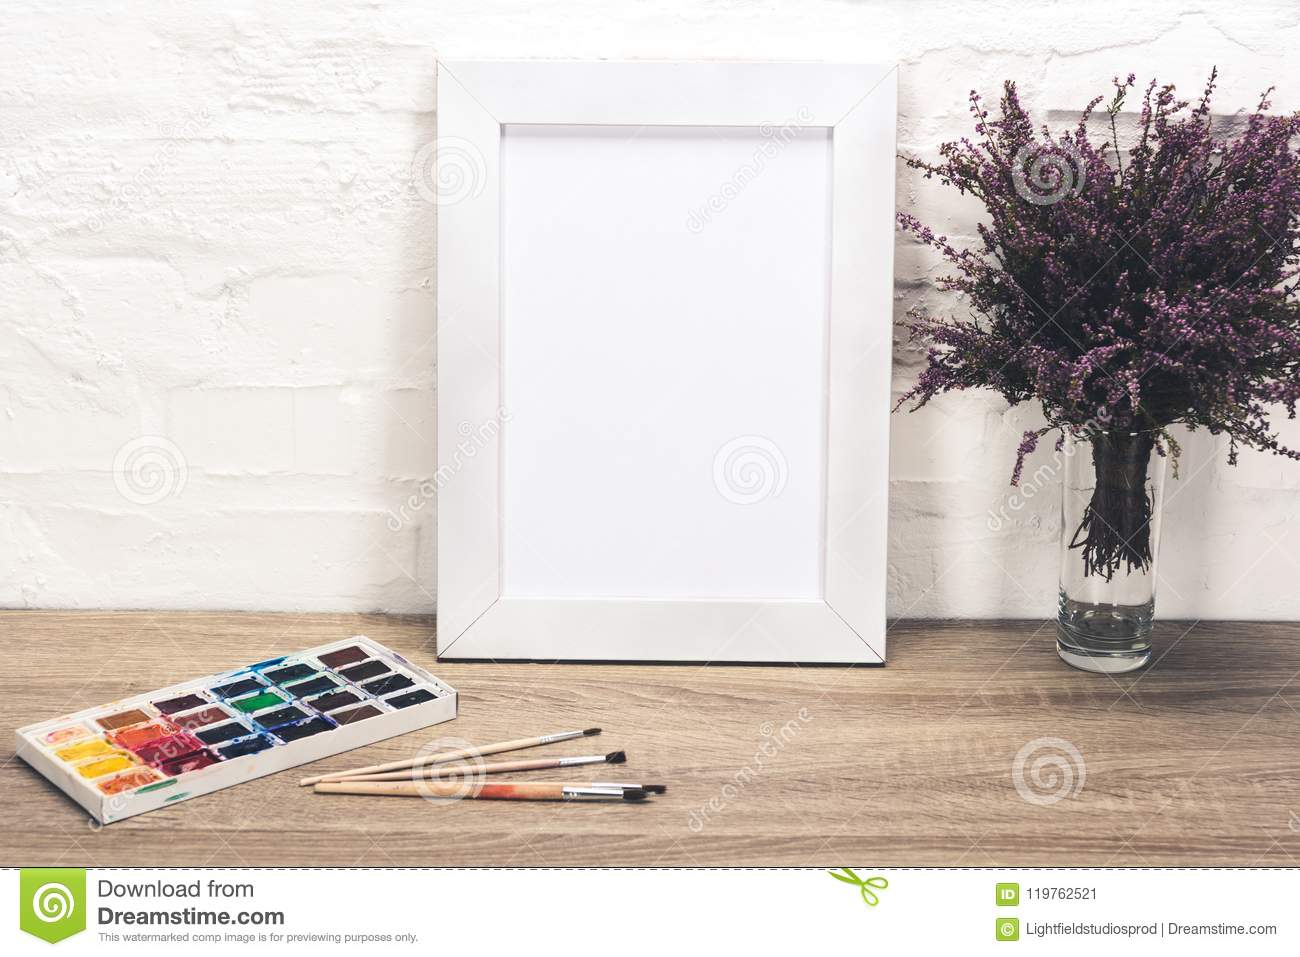 close up view of photo frame, lavender flowers in vase and drawing equipment